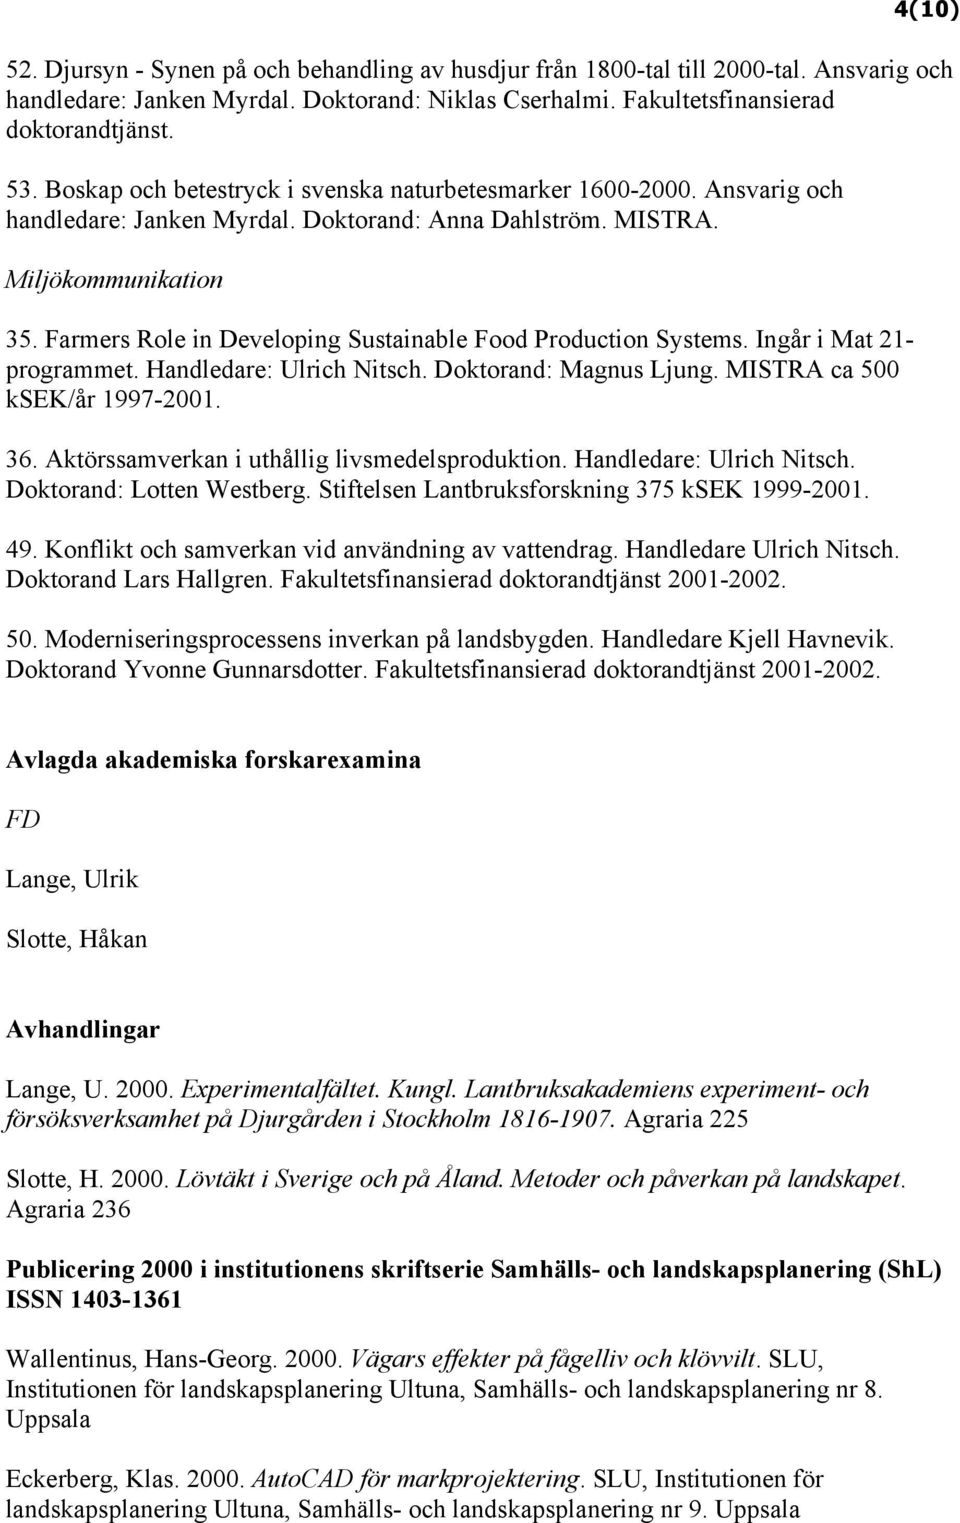 Farmers Role in Developing Sustainable Food Production Systems. Ingår i Mat 21- programmet. Handledare: Ulrich Nitsch. Doktorand: Magnus Ljung. MISTRA ca 500 ksek/år 1997-2001. 36.